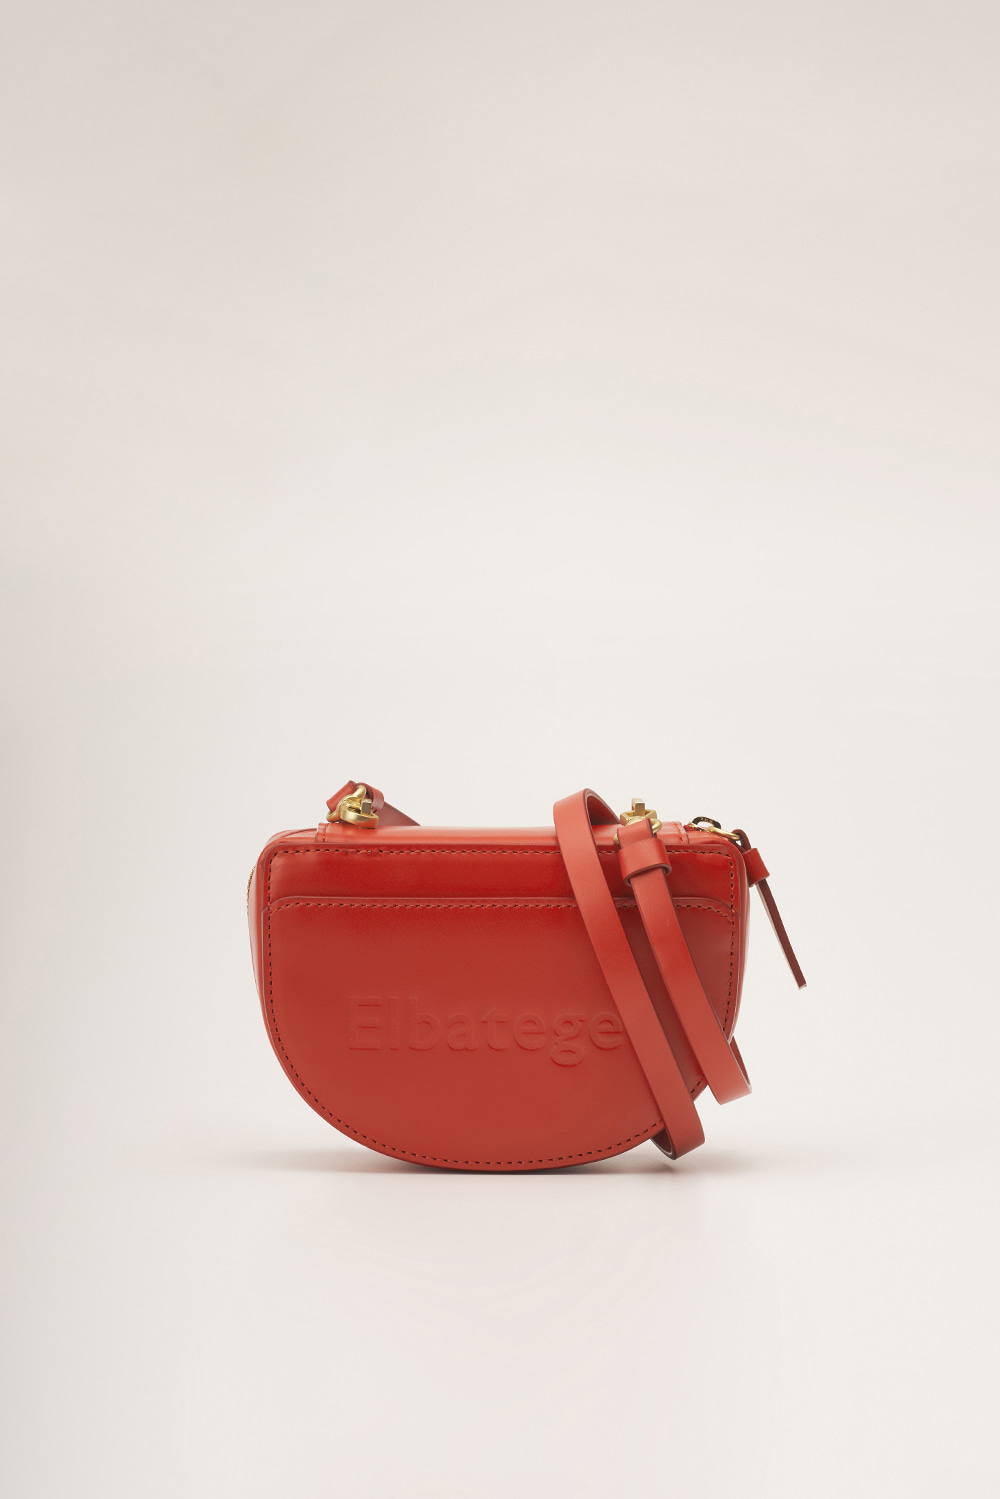 Nuts Bag in Berry Red[하연수 착용]